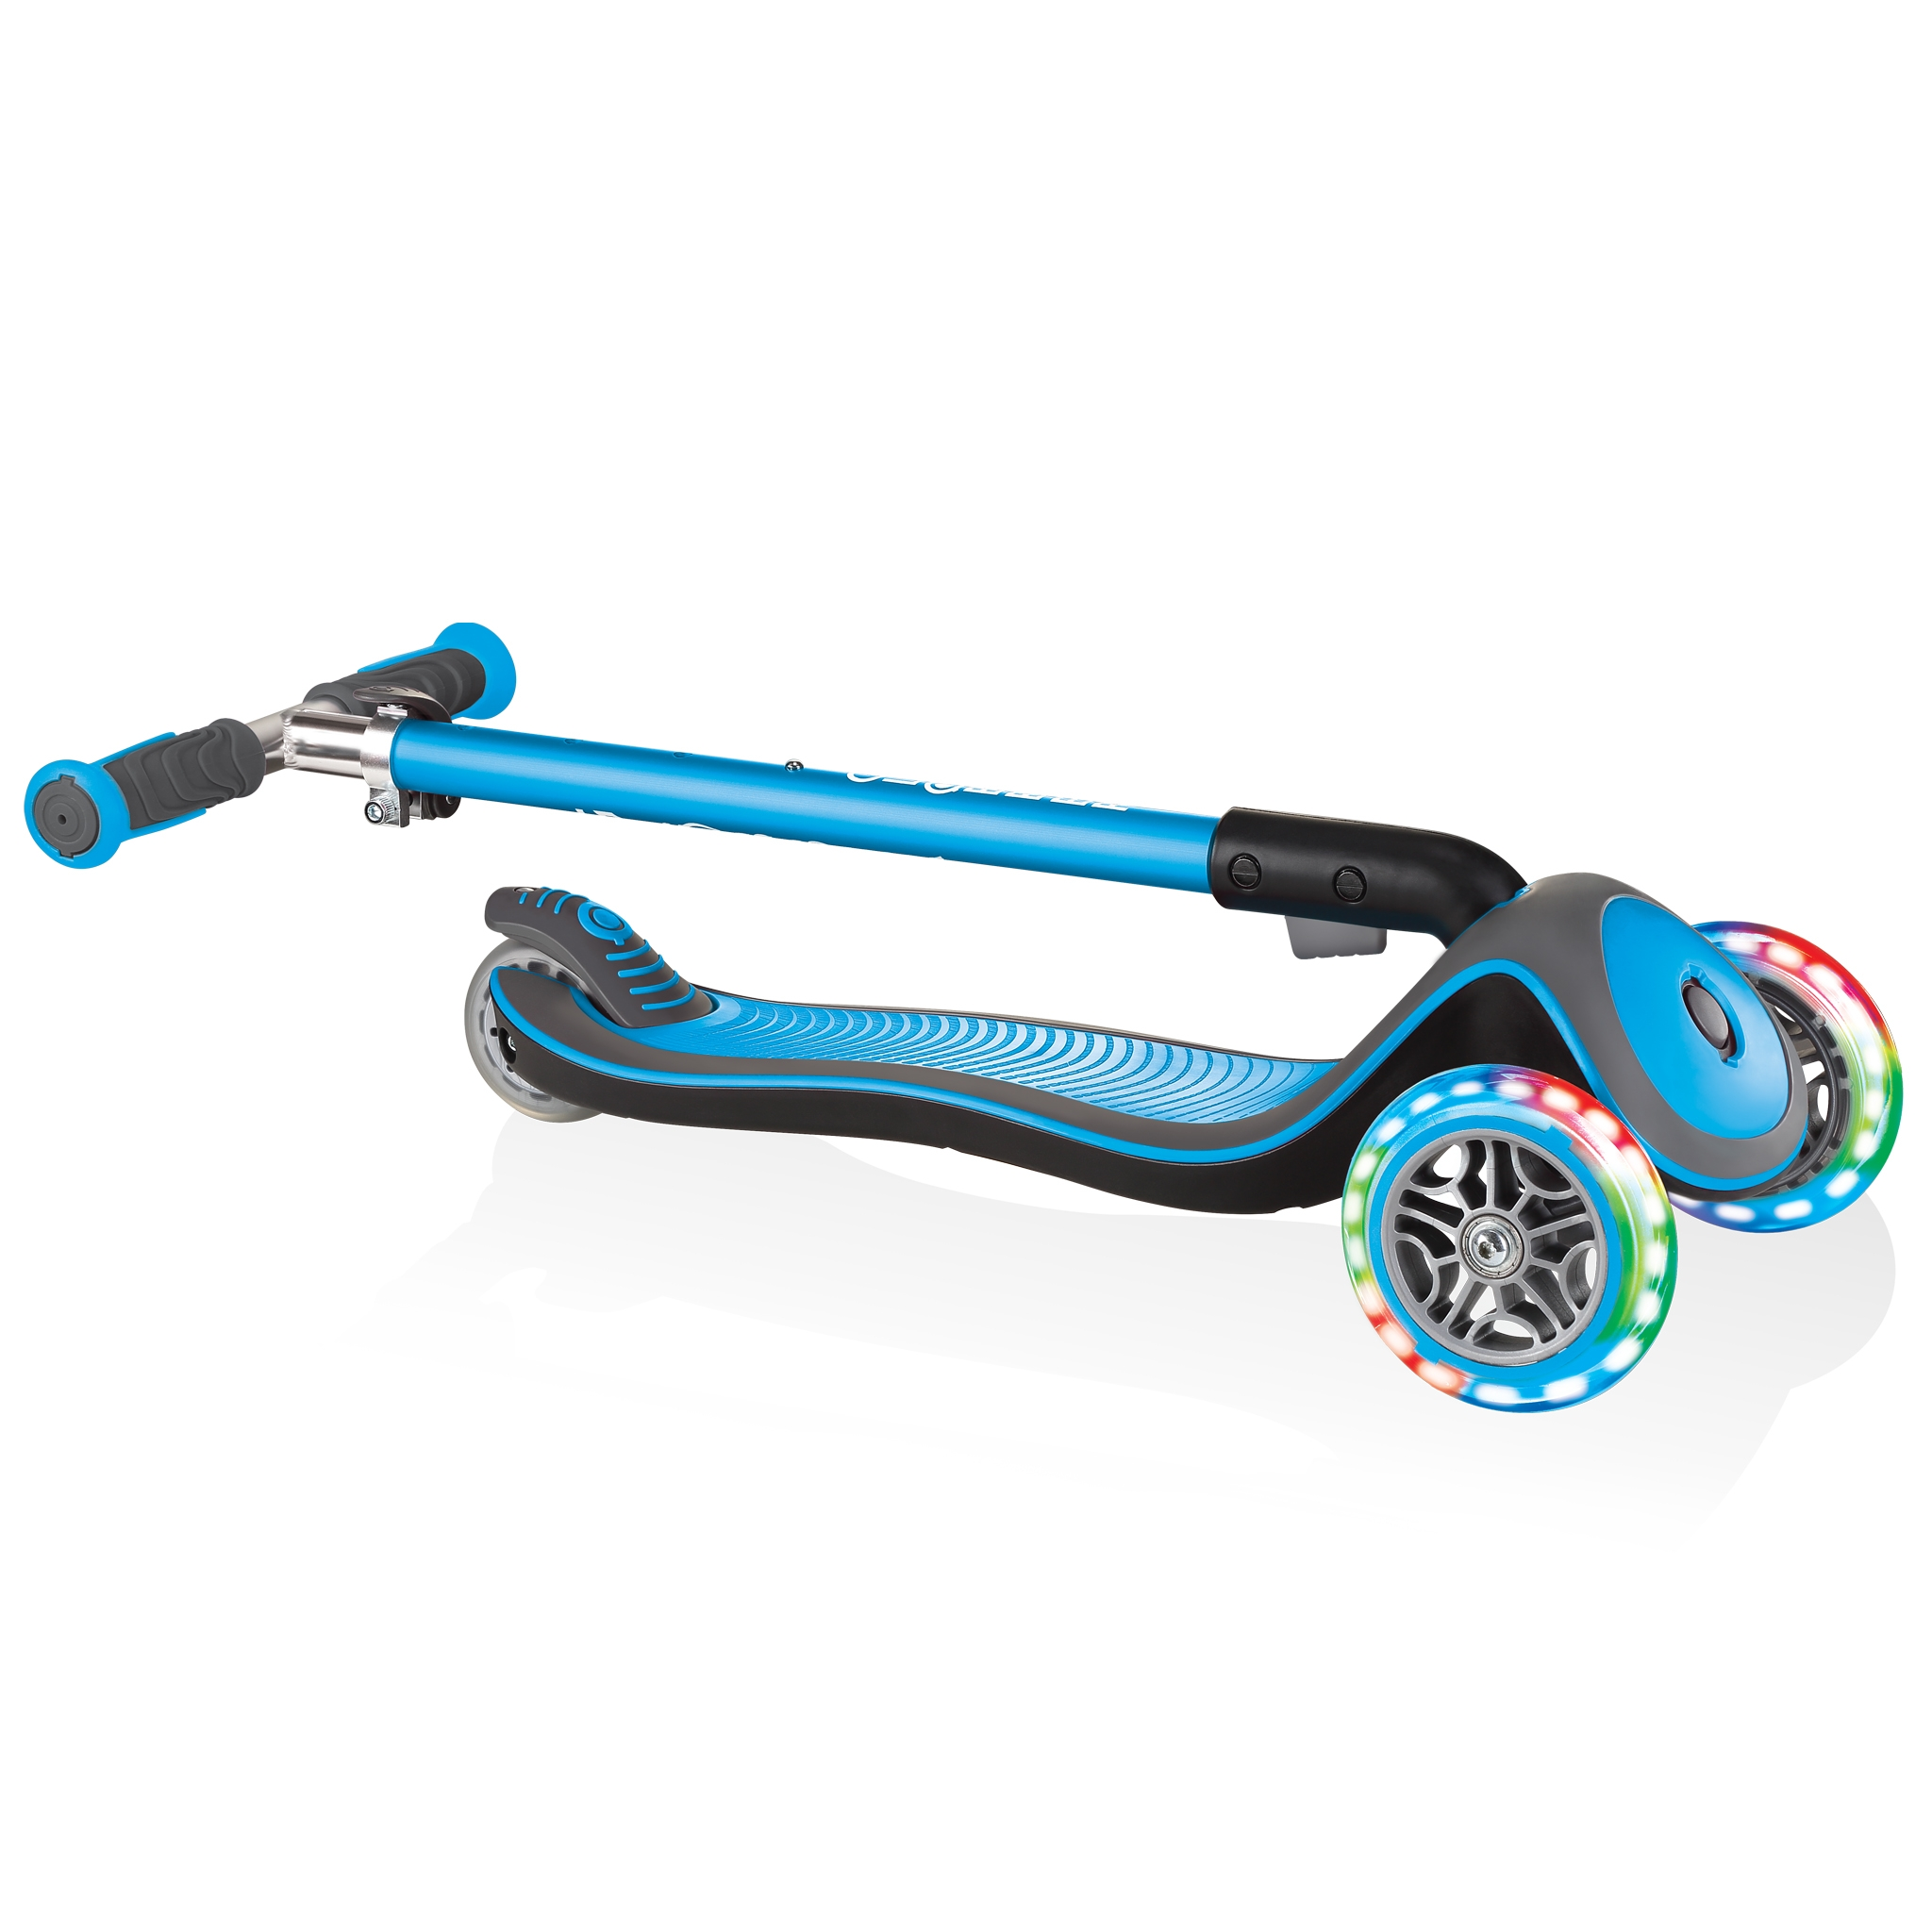 Globber-ELITE-DELUXE-LIGHTS-3-wheel-foldable-scooter-for-kids-with-light-up-scooter-wheels-sky-blue